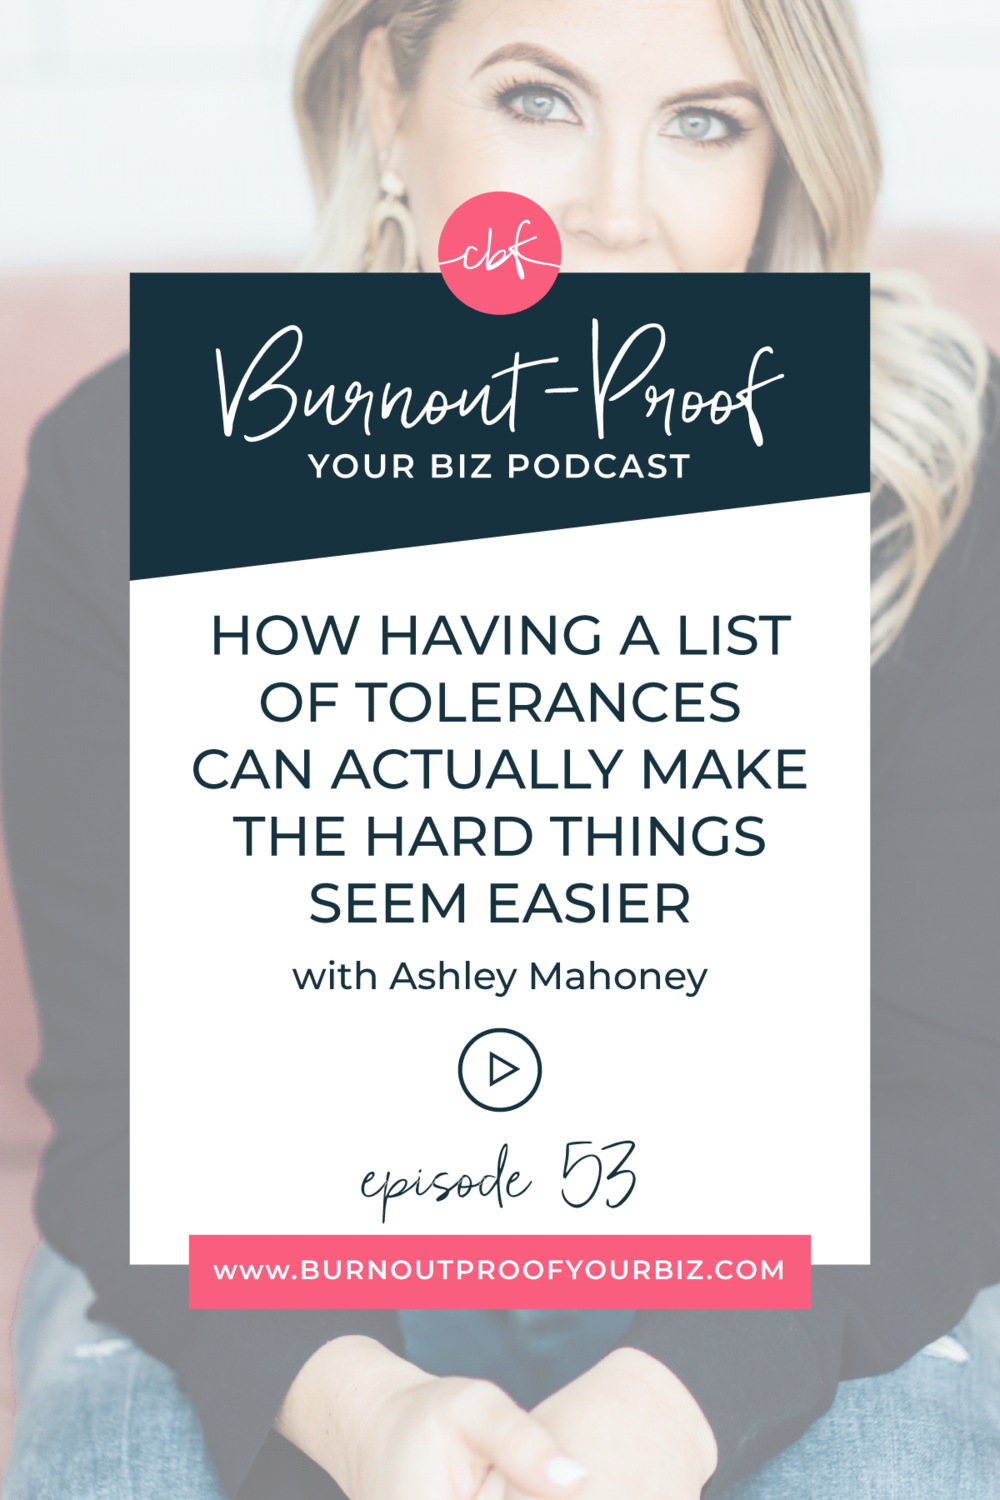 HOW HAVING A LIST OF TOLERANCES CAN ACTUALLY MAKE THE HARD THINGS SEEM EASIER on the Burnout-Proof Your Biz Podcast with Chelsea B Foster | Episode 051 - Turning Your Creative Outlet Into a Business that You Love with Ashley Hasty of Hasty Book List | Learn how to run your biz and live your dream life on your own terms without the fear of burnout. |||  FINDING YOUR CREATIVE OUTLET | HOBBY TO BUSINESS | HOBBY OR BUSINESS | CREATING A BUSINESS YOU LOVE | FINDING JOY | SPARK JOY | WHAT TO DO WHEN YOU'RE BURNING OUT | LETTING GO OF SOMETHING YOU LOVE BUT ISN'T WORKING | GOING FROM PART-TIME BLOGGER TO FULL-TIME BLOGGER | BLOGGER ORGANIZATION | ORGANIZATION FOR BLOGGERS | HOW TO ORGANIZE YOUR CONTENT CALENDAR | HOW TO TURN YOUR HOBBY OF READING INTO A BUSINESS | BUSINESS COACH | WORKFLOW & PRODUCTIVITY SPECIALIST | SYSTEMS & ORGANIZATION SPECIALIST FOR COACHES | ADD MORE FREEDOM TO YOUR LIFE | BUSINESS COACH FOR BLOGGERS